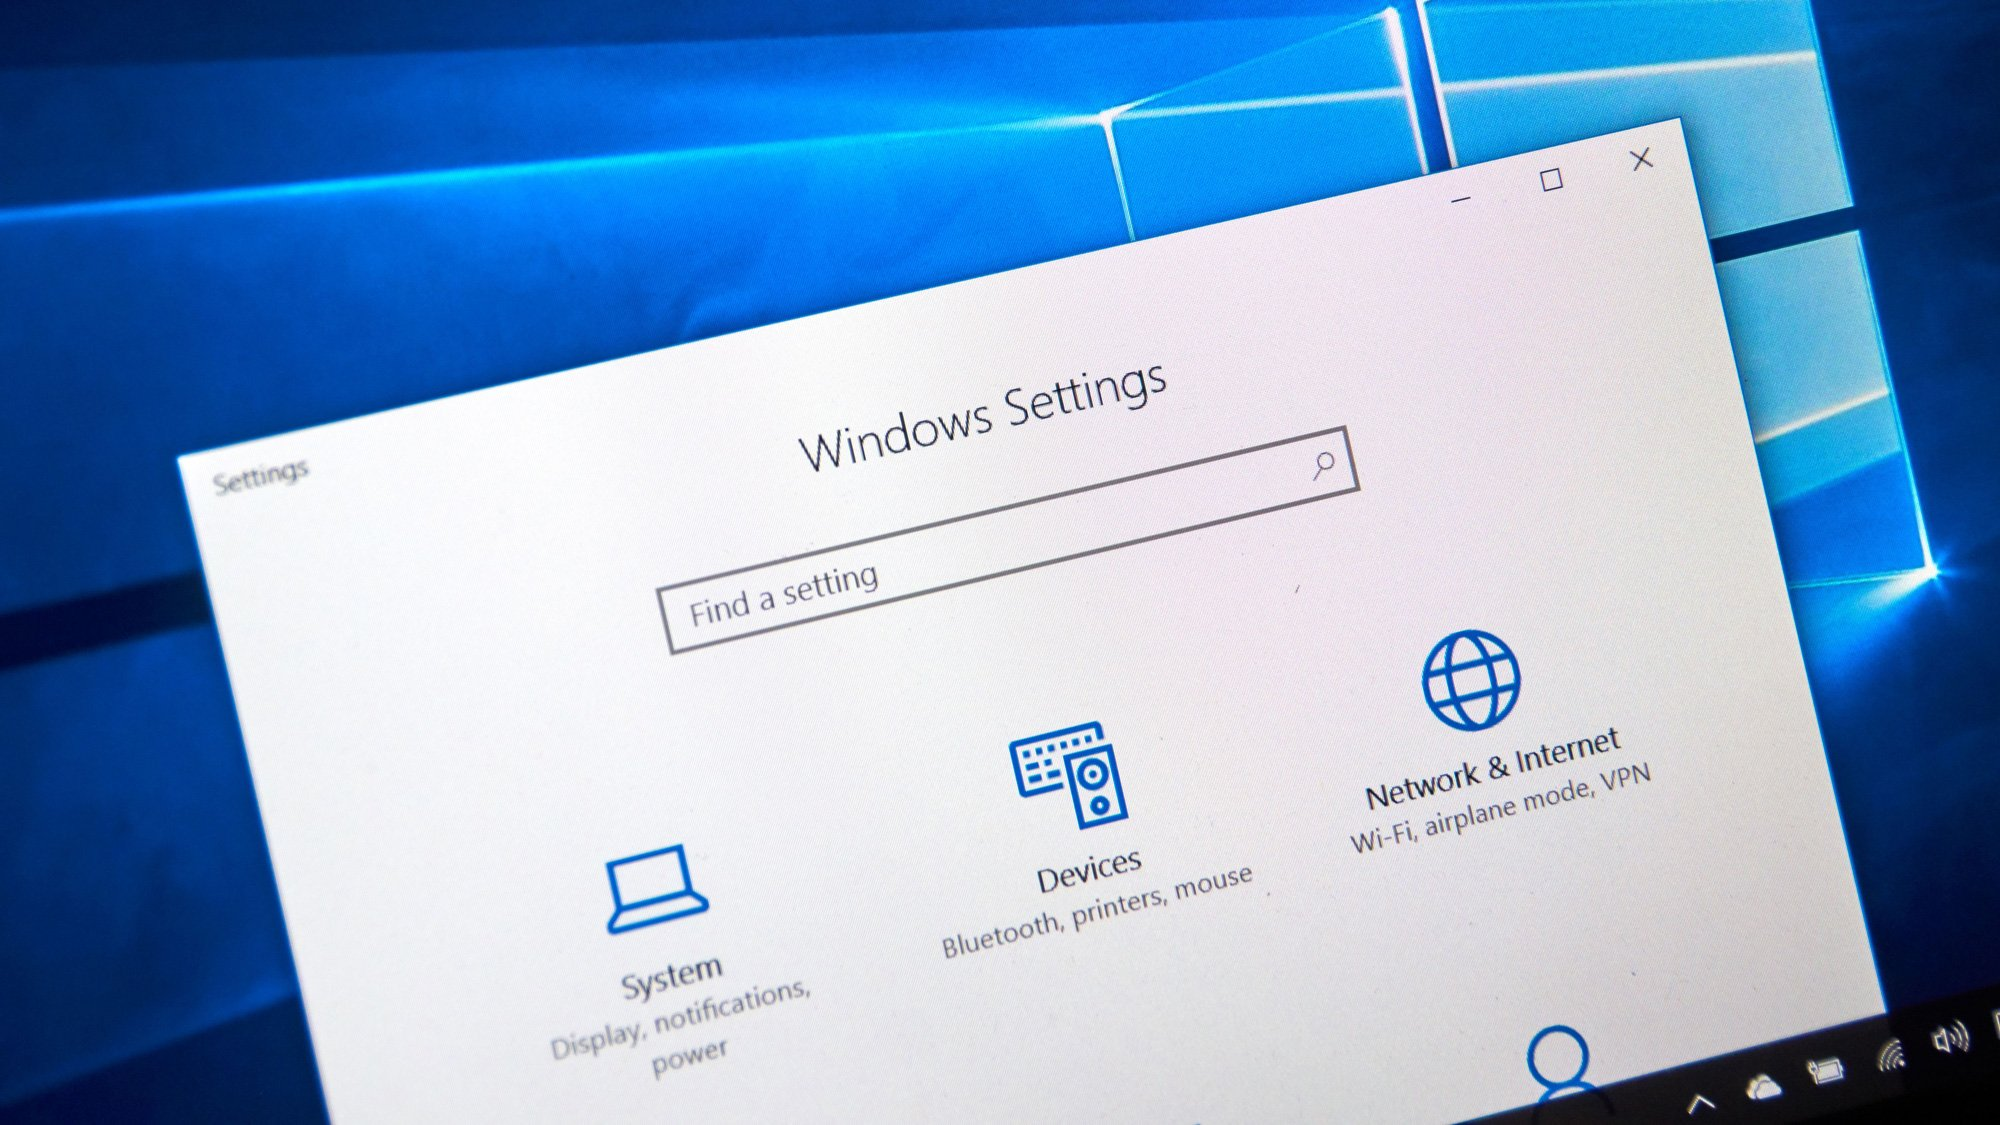 How to fix a Windows (10, 8 or 7) corrupt user profile: The User